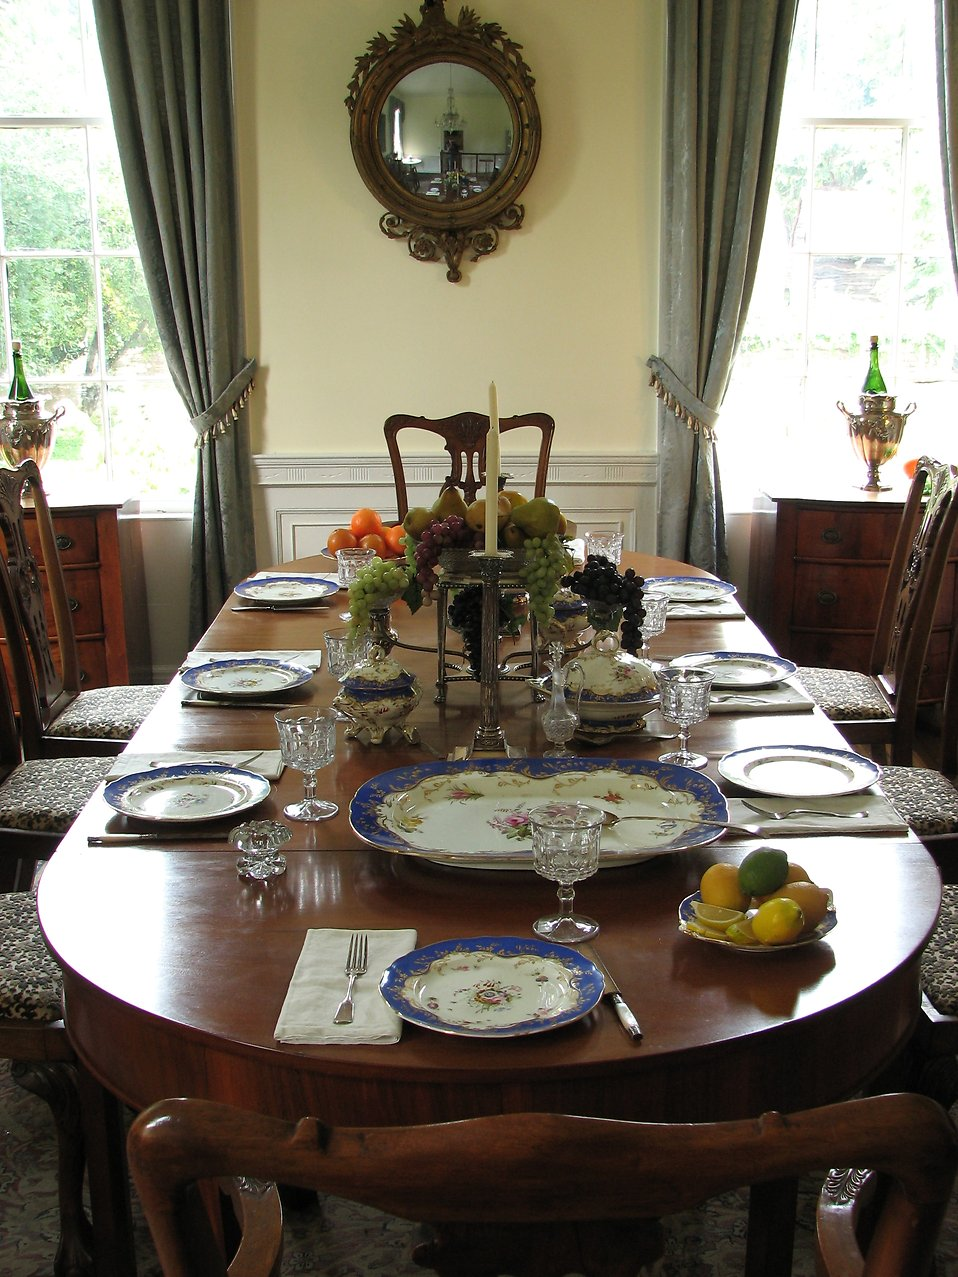 A table setting at the Antebellum Plantation at Stone Mountain Park : Free Stock Photo